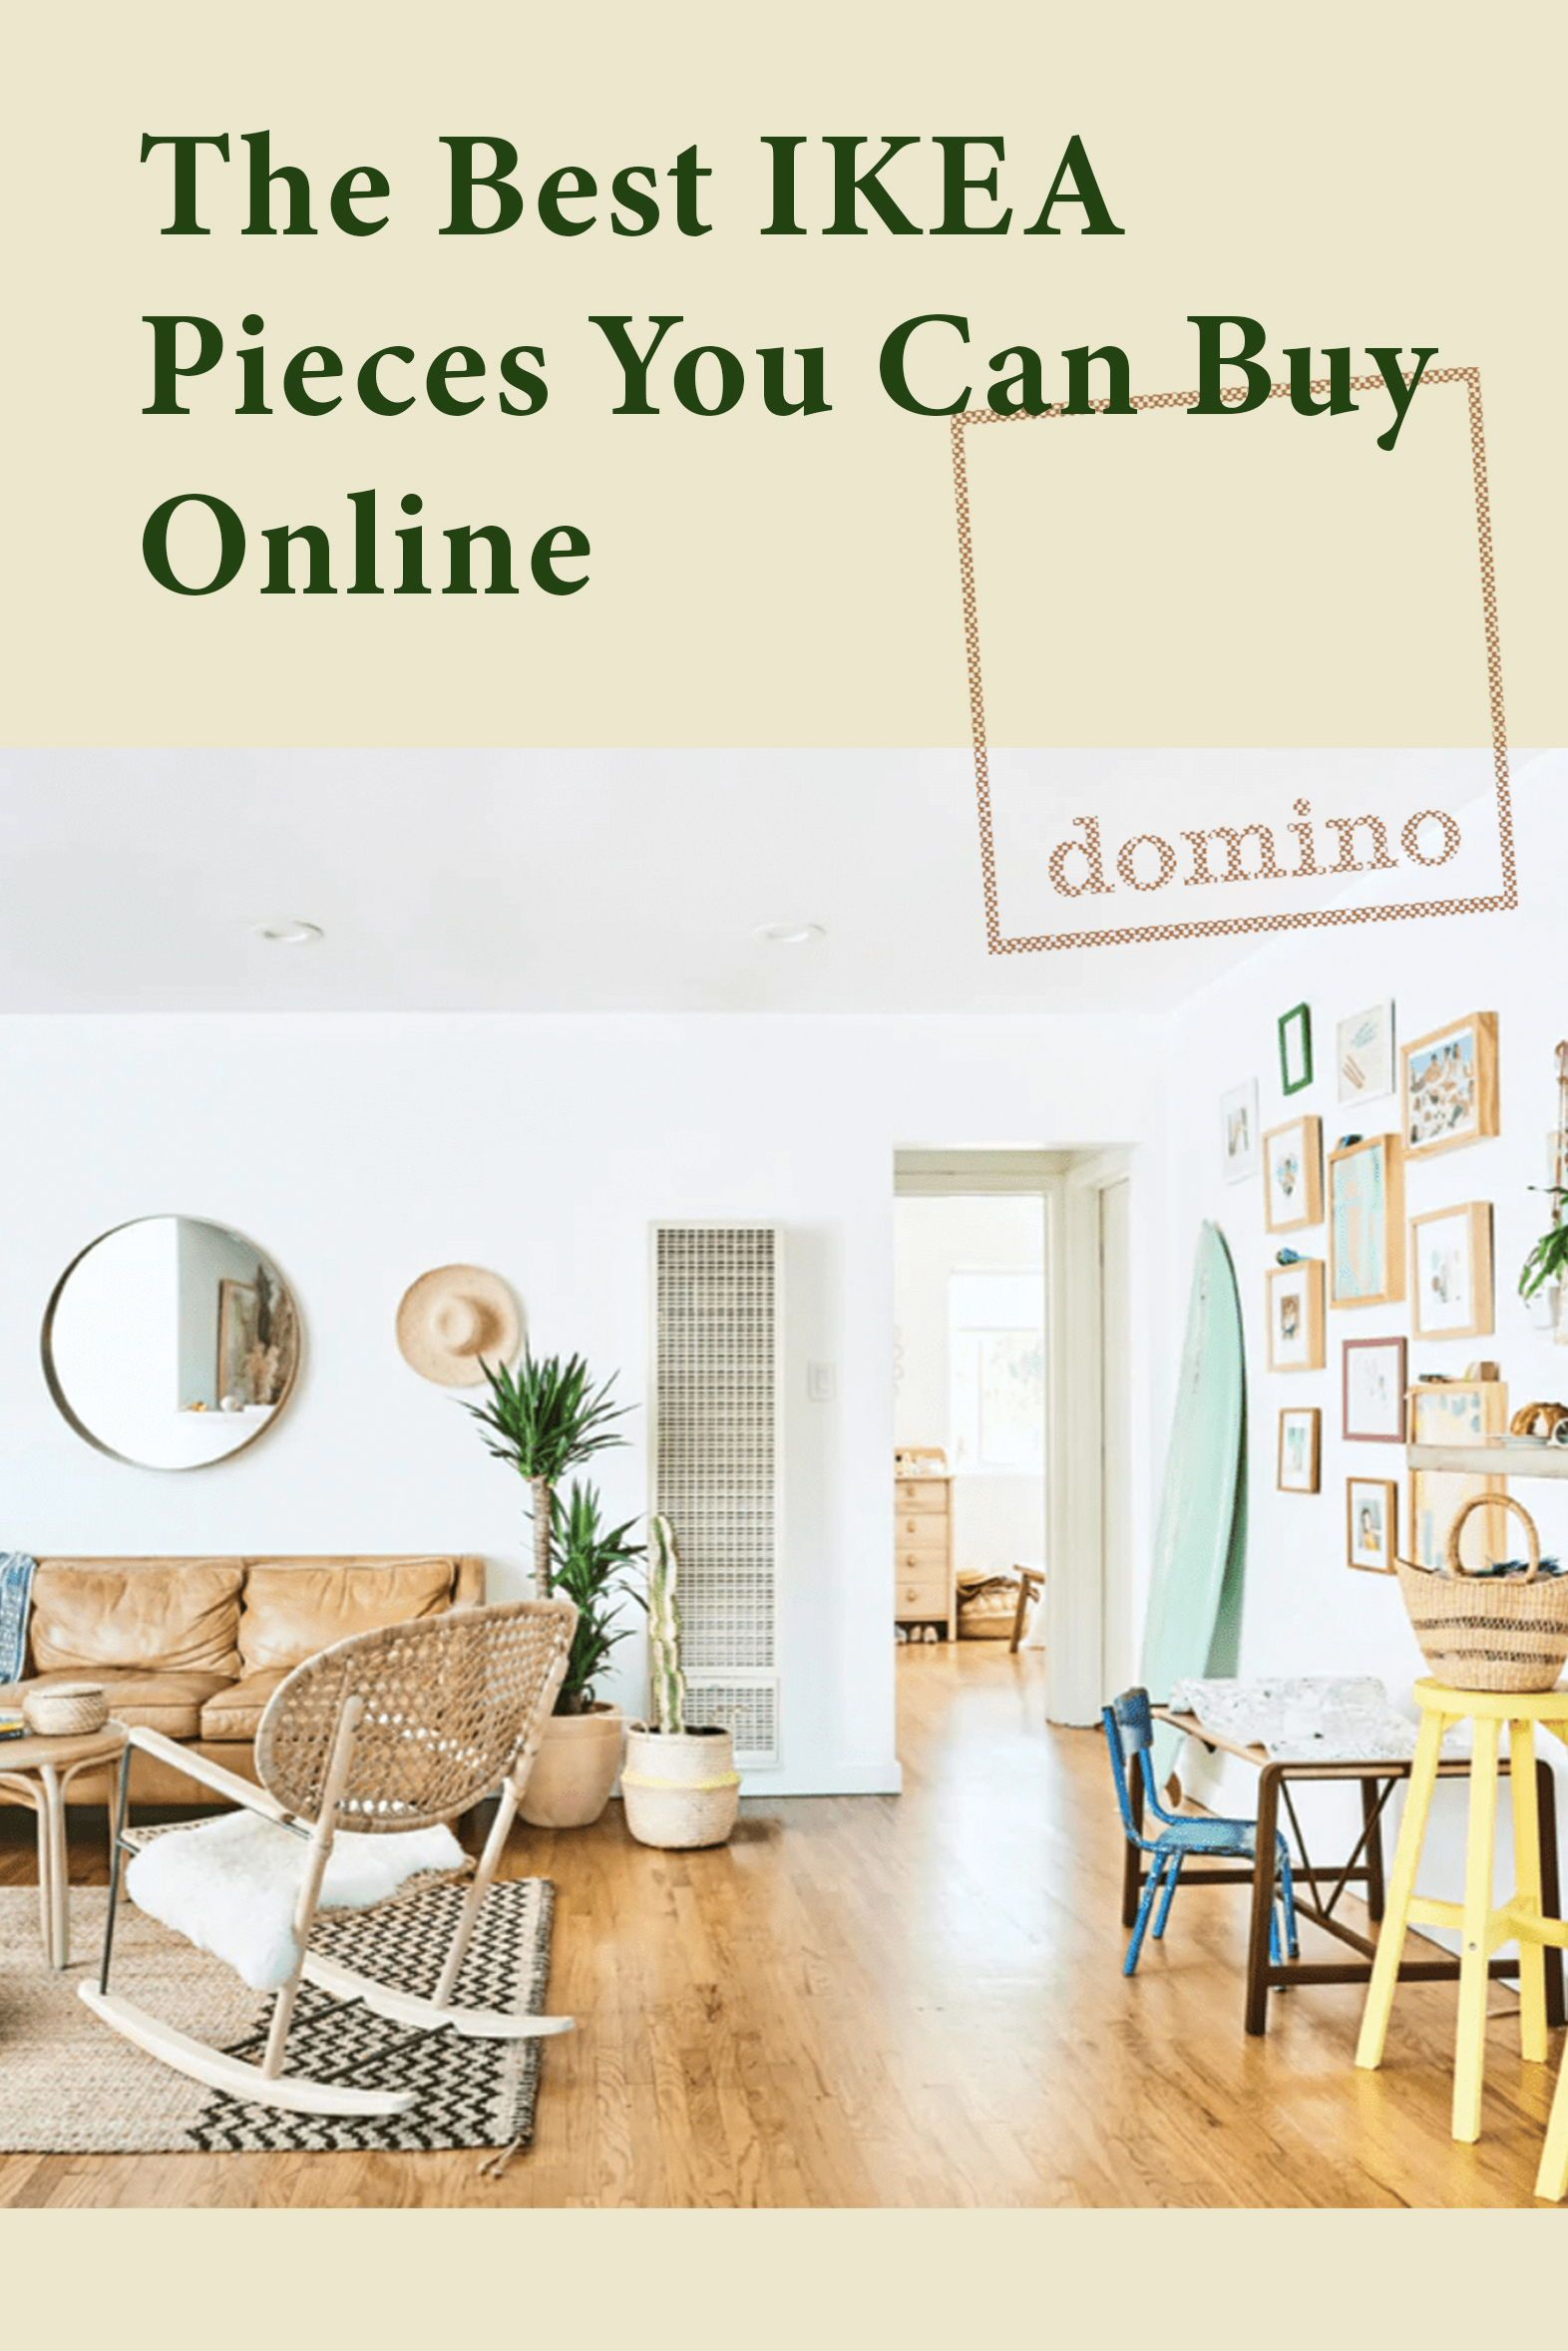 Design Your Room Online Ikea: Best Things To Buy Ikea Online Shopping